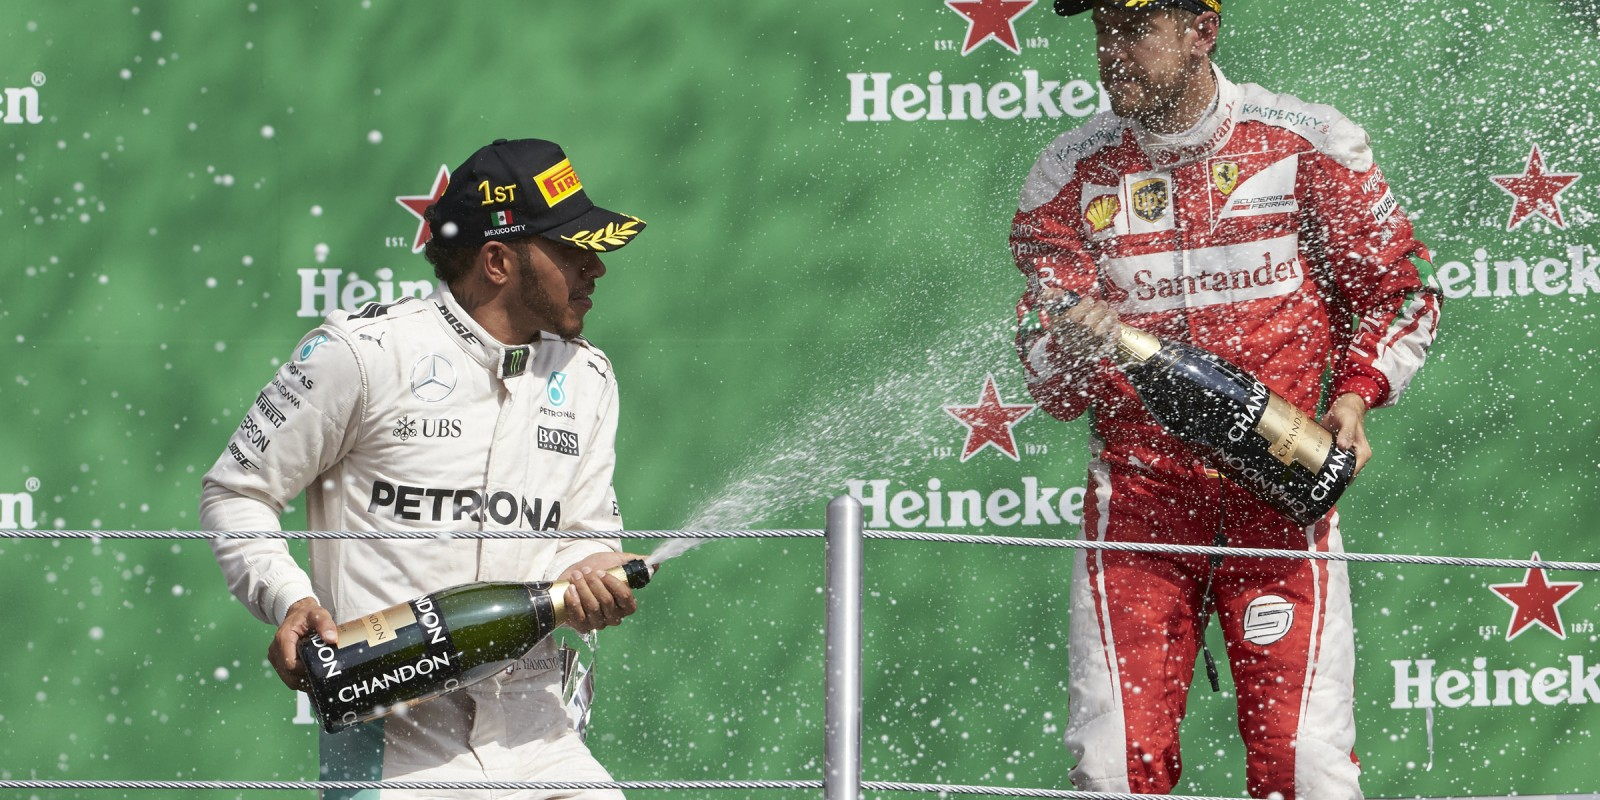 Sunday images from the 2016 Mexican Grand Prix